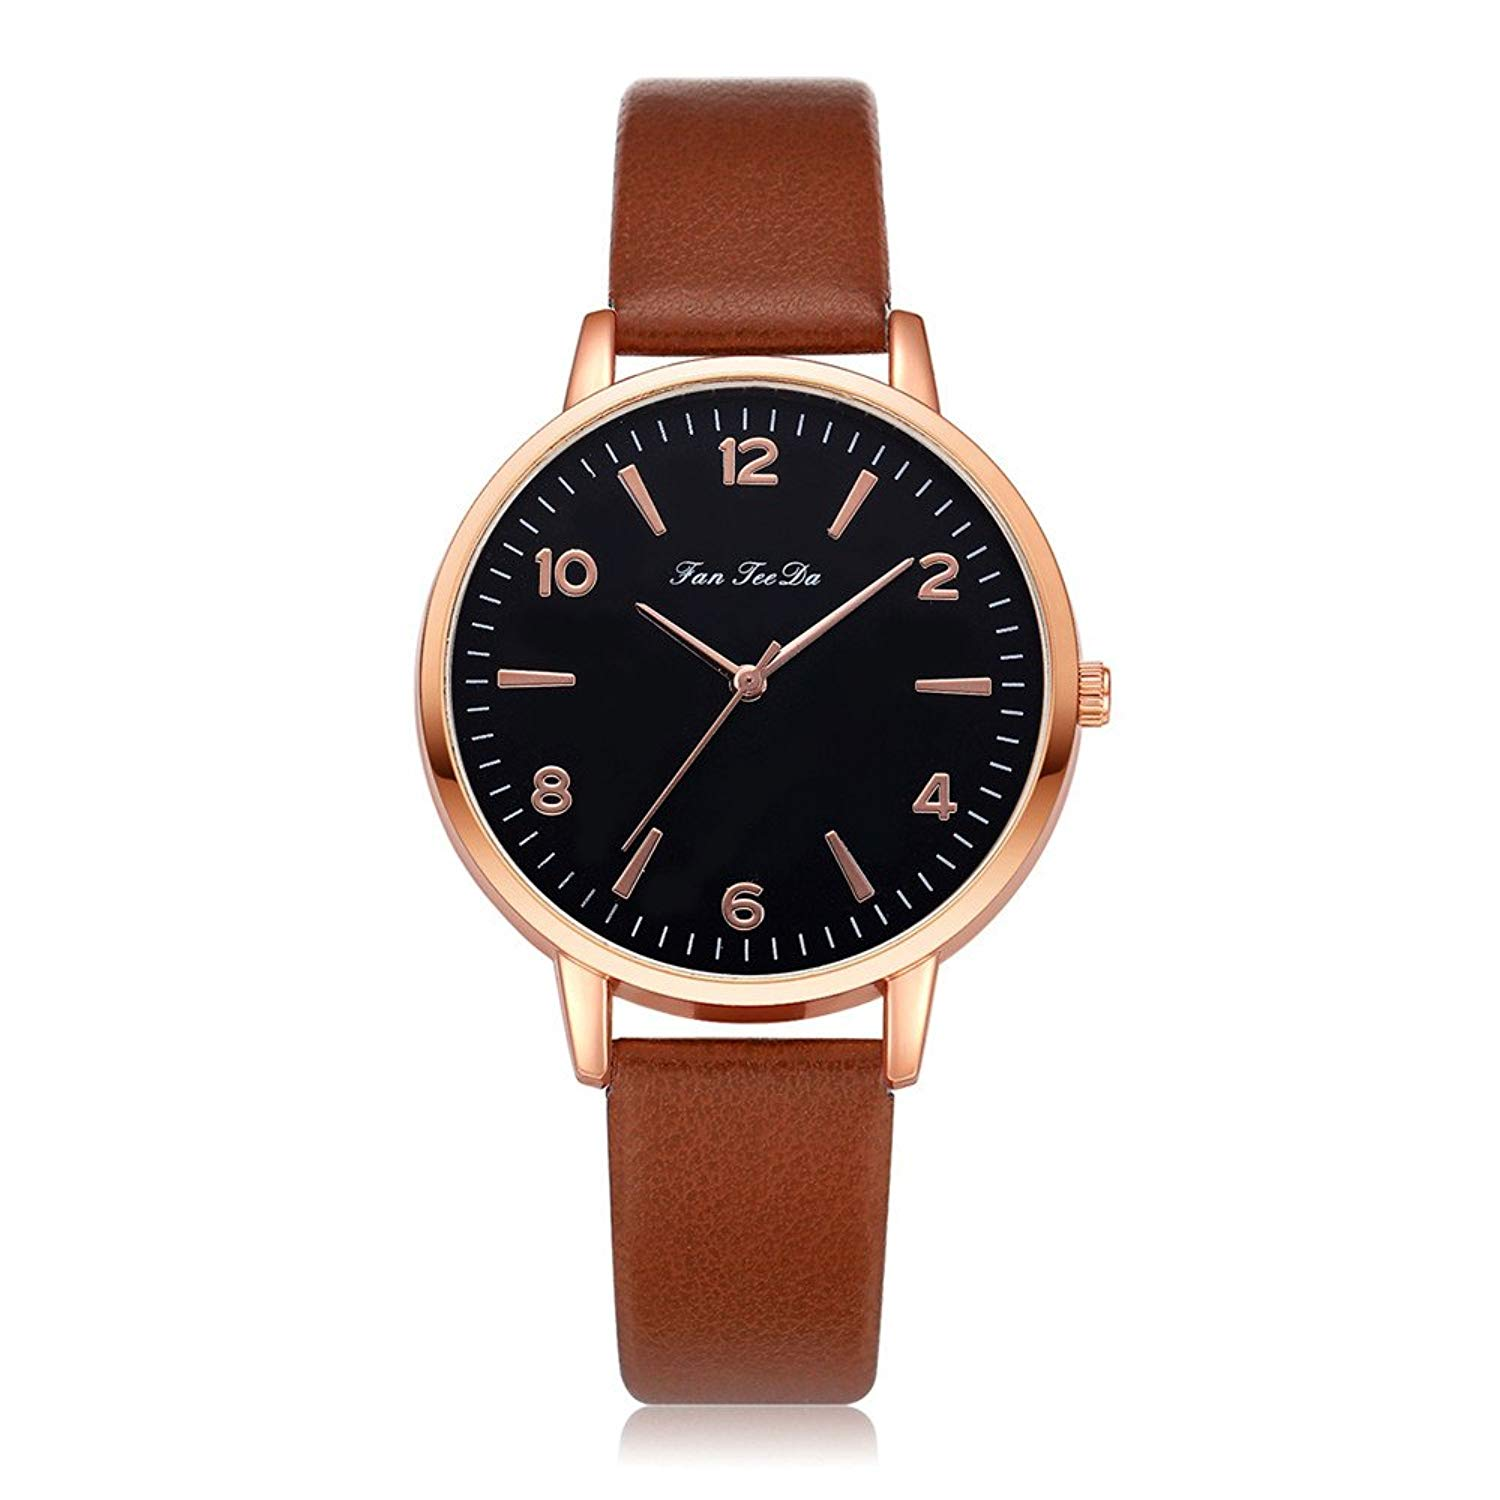 Womens Quartz Watches On Sale, POTO Quartz Womens Waches Clearance Casual Luxury Stainless Steel Round Wristwatch Womens Leather Band Analog Alloy Wrist Watch For Ladies